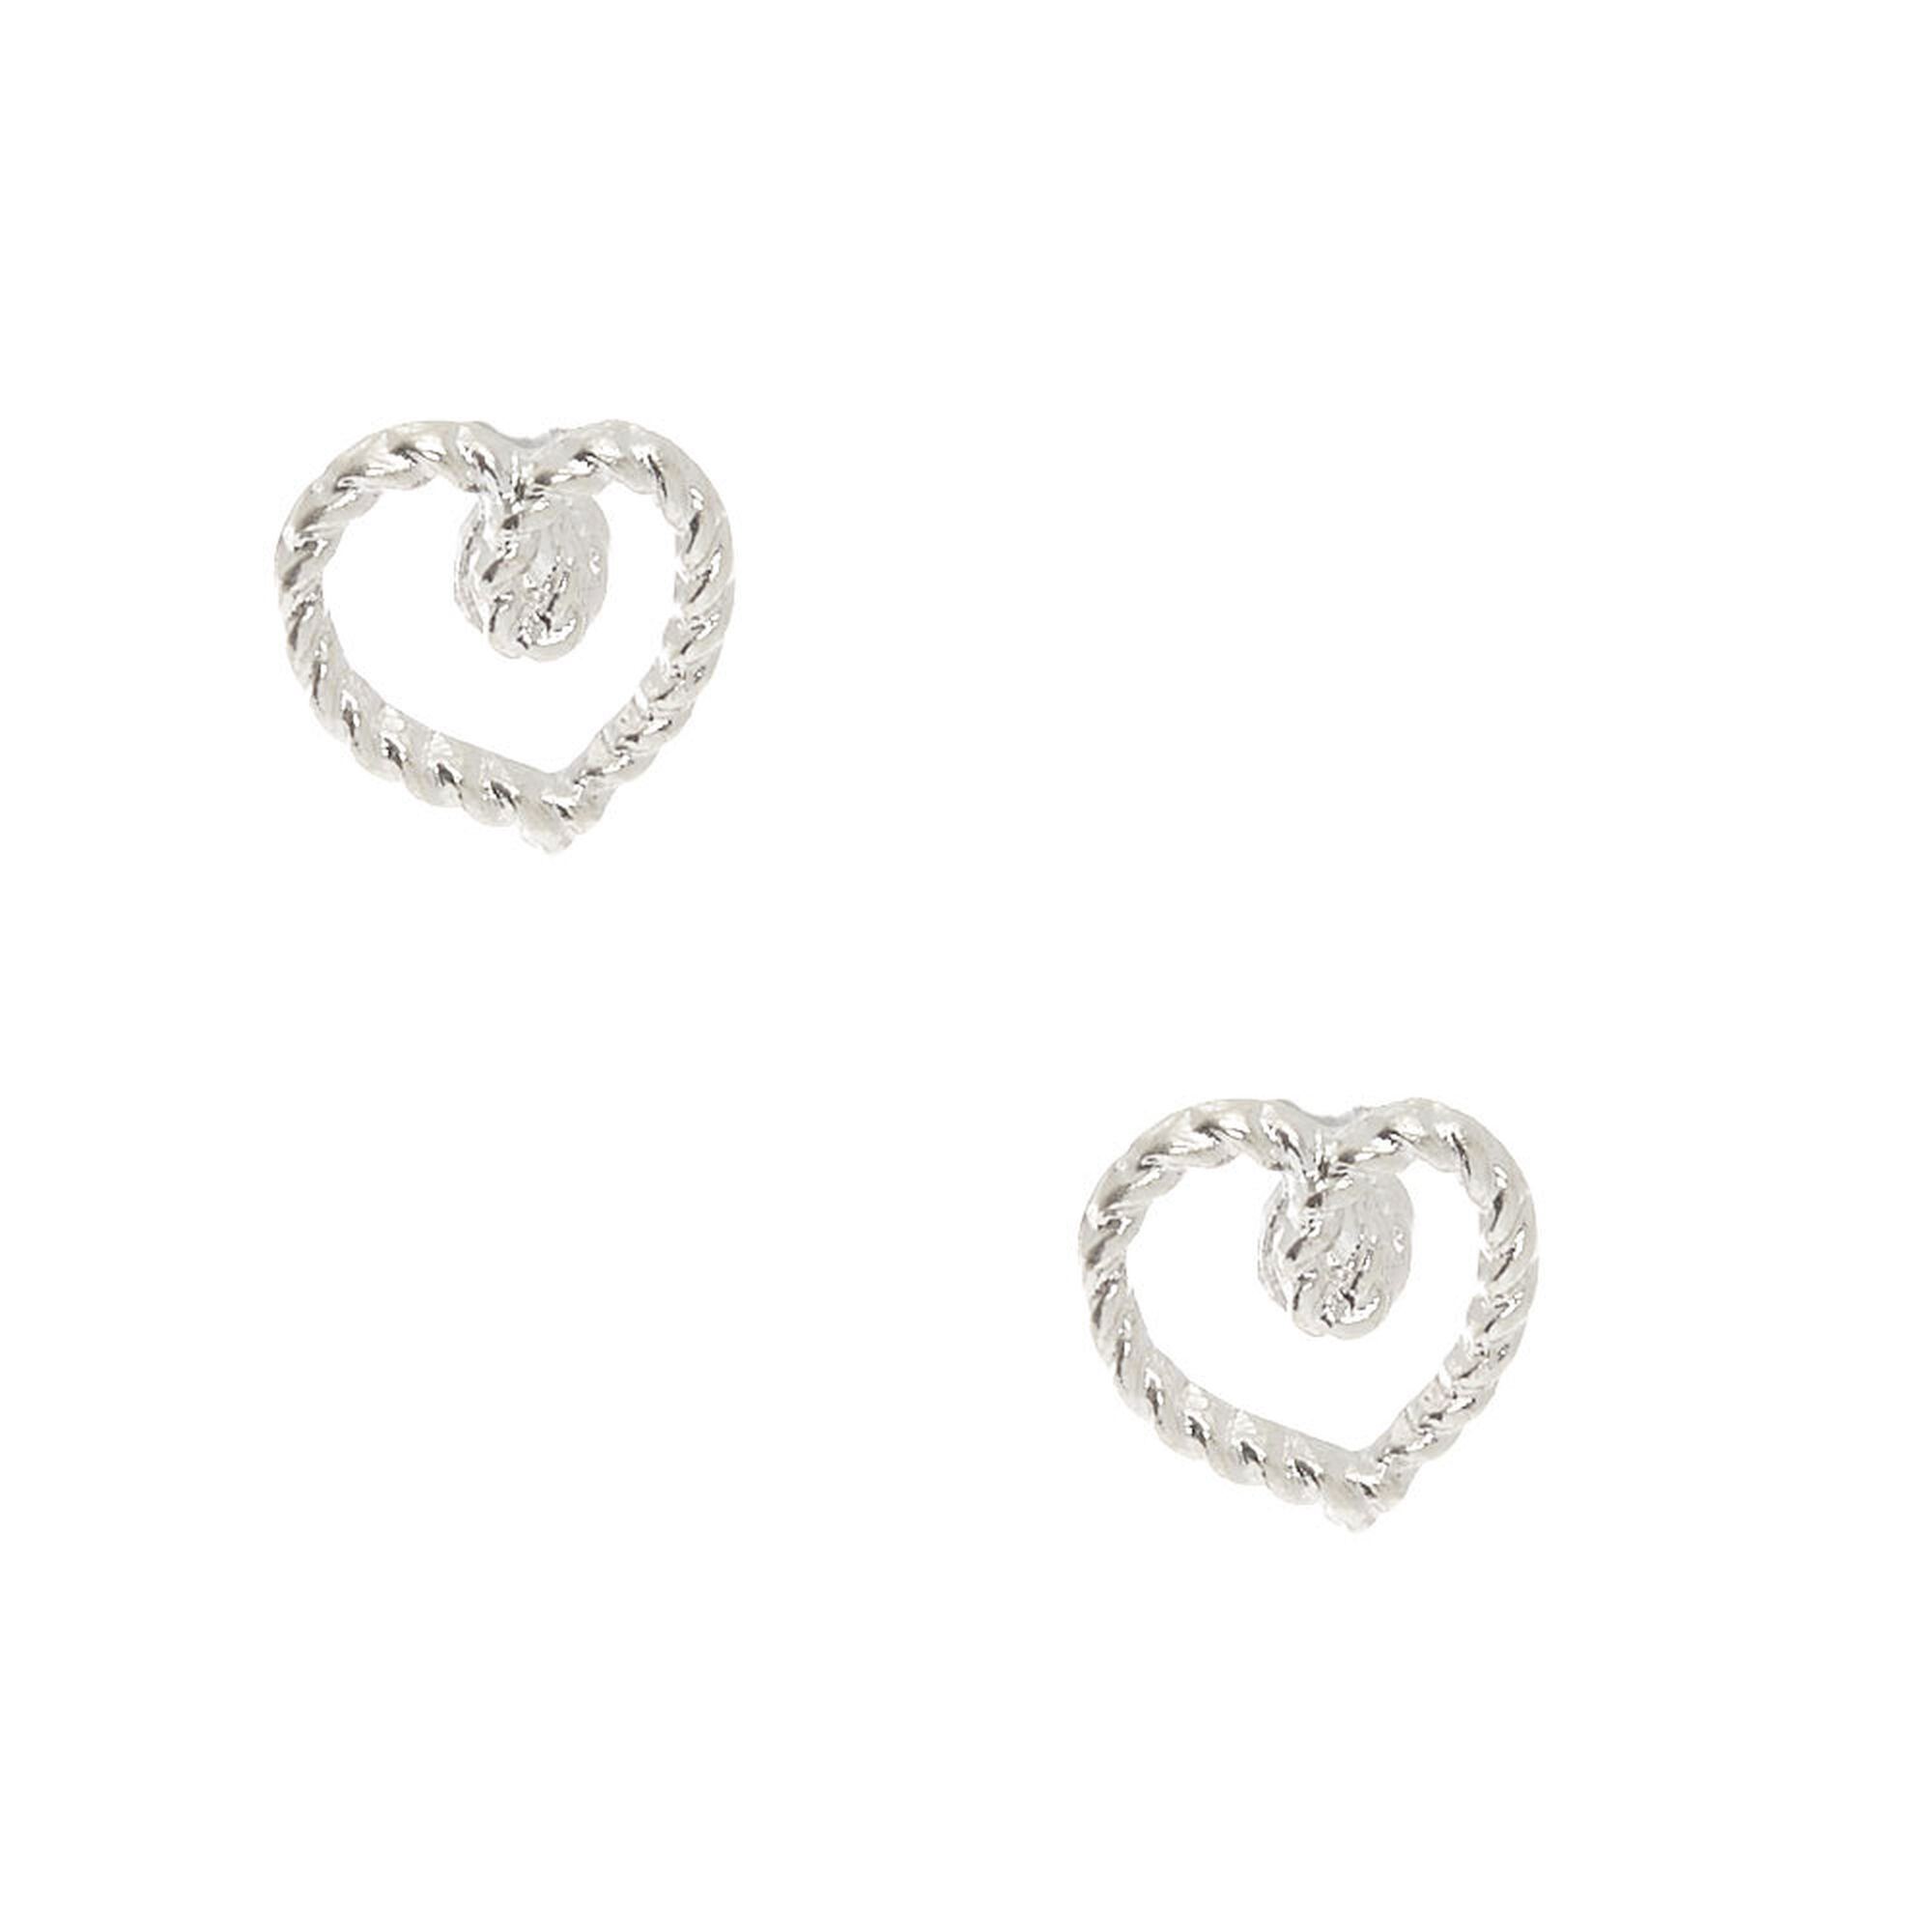 Silver Rope Heart Stud Earrings